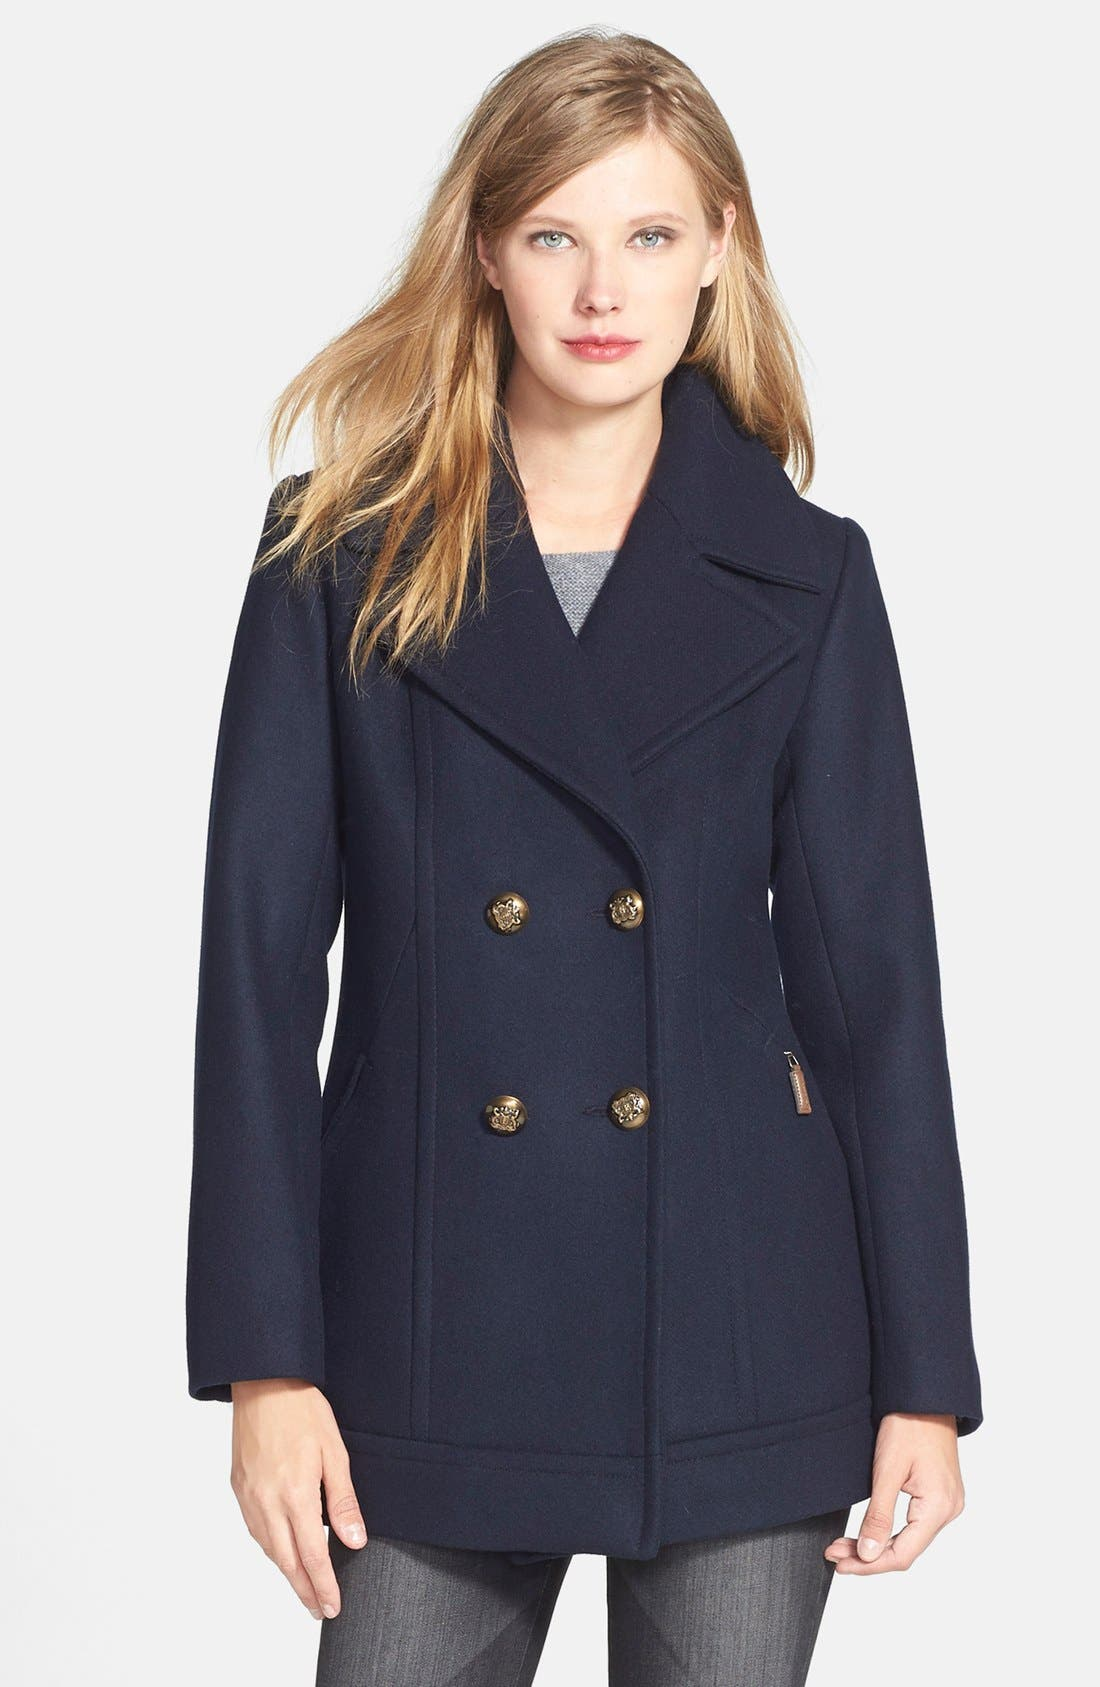 Double Breasted Wool Blend Peacoat,                             Main thumbnail 1, color,                             001